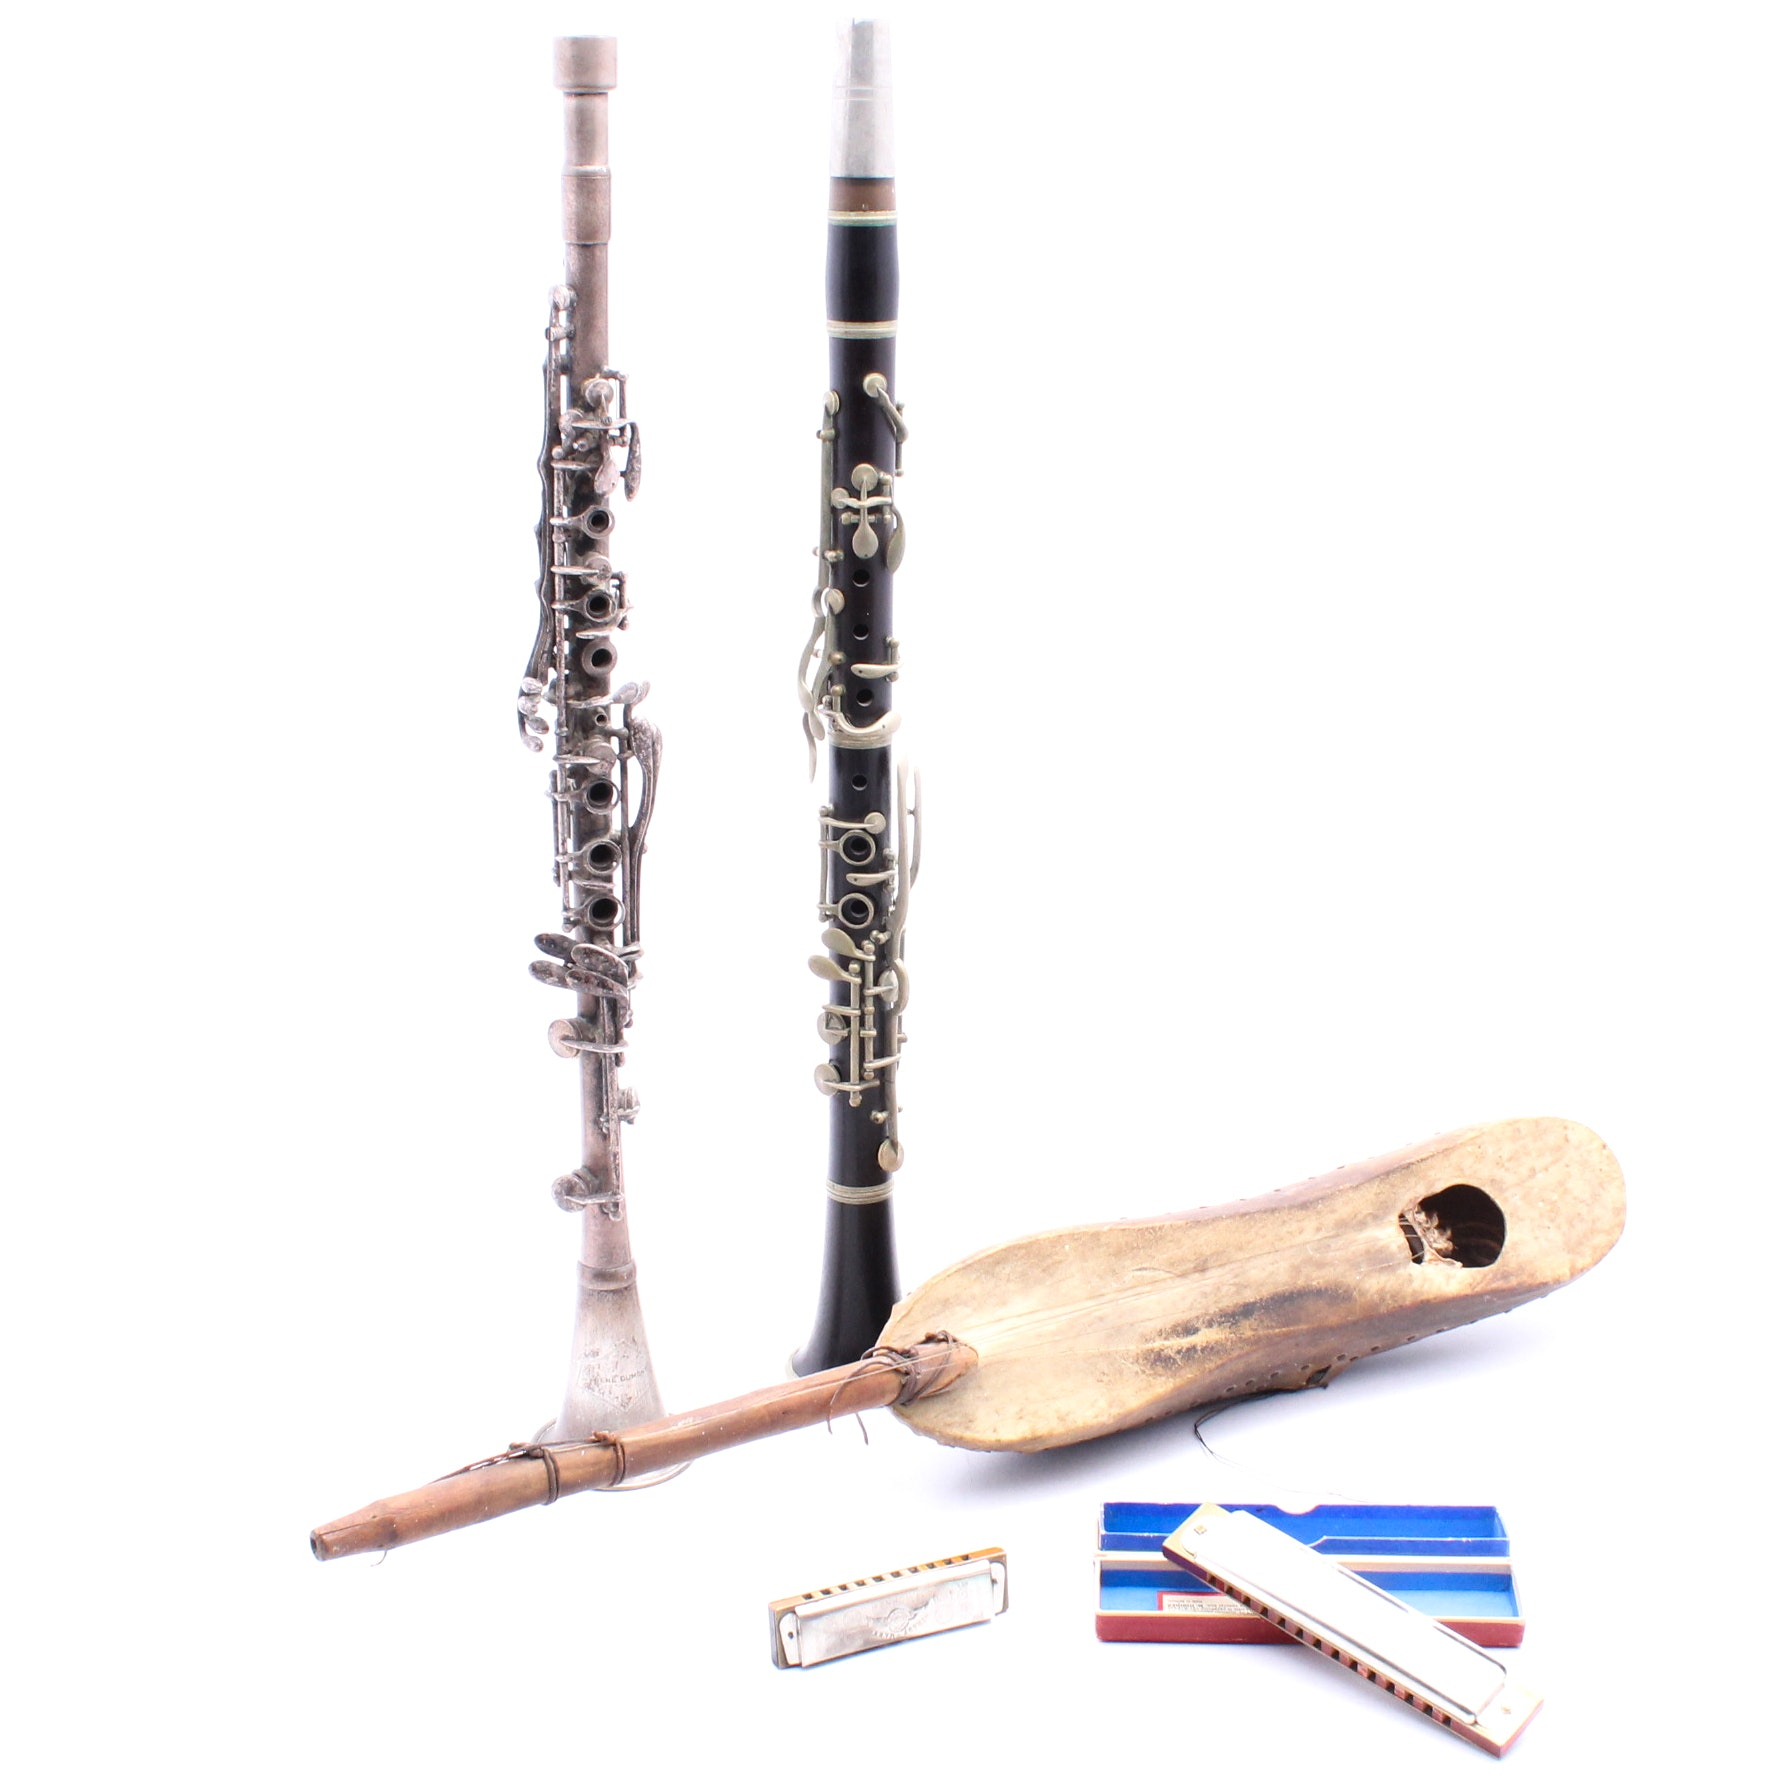 Musical Instruments Featuring Clarinets and Harmonicas